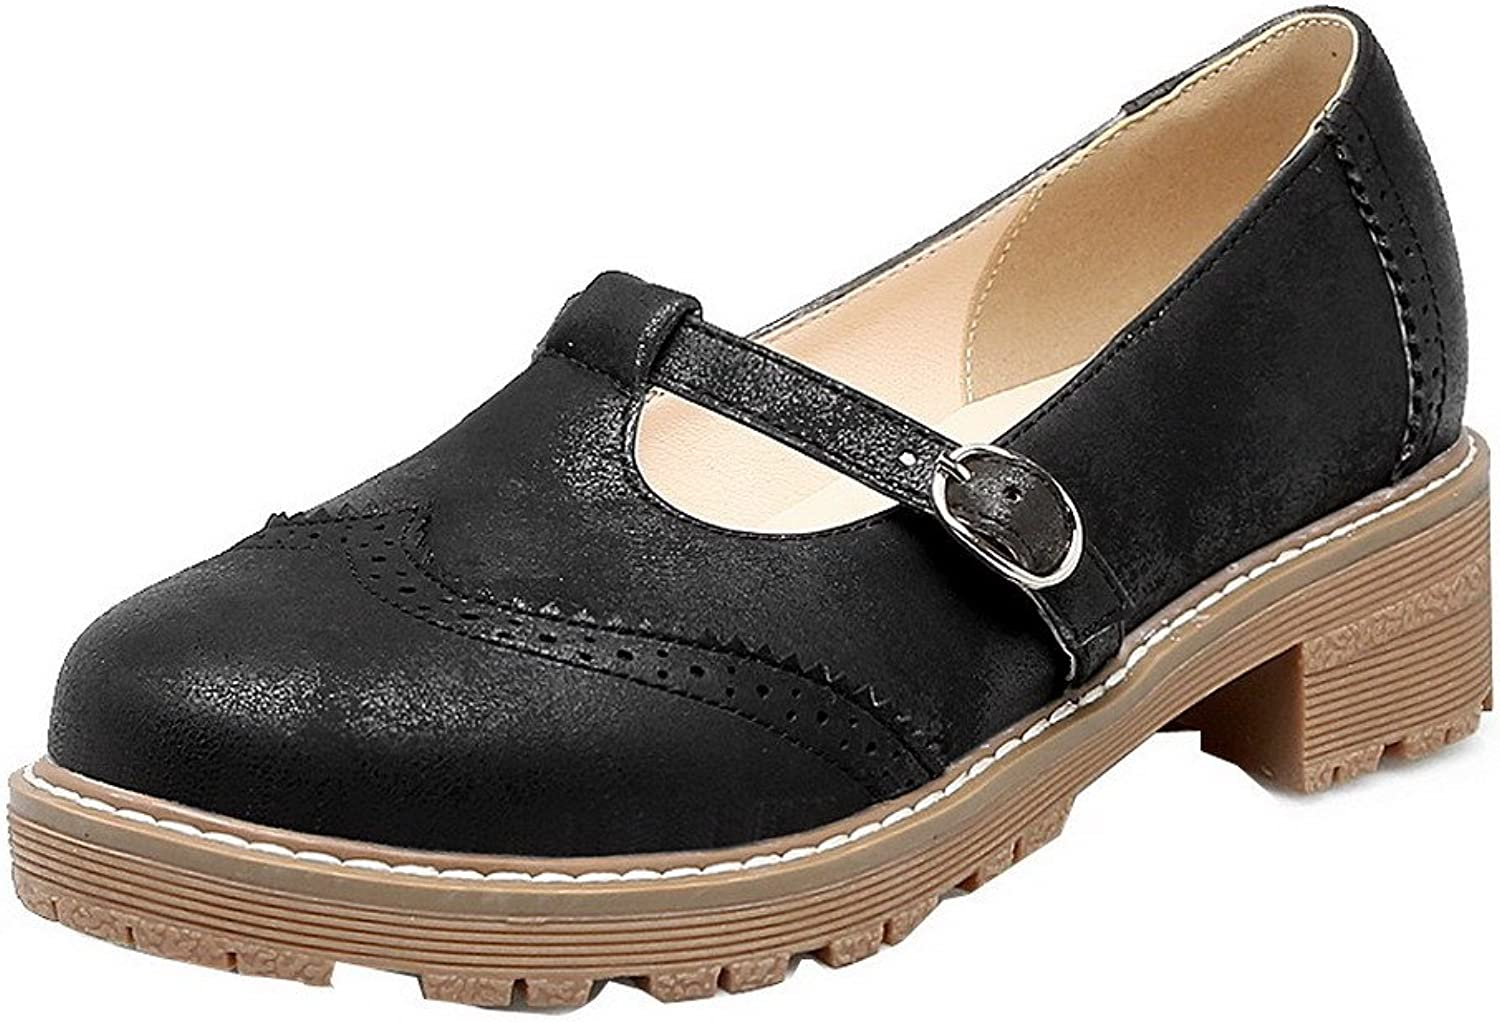 WeiPoot Women's Low-Heels Solid Pull-On PU Round Closed Toe Pumps-shoes